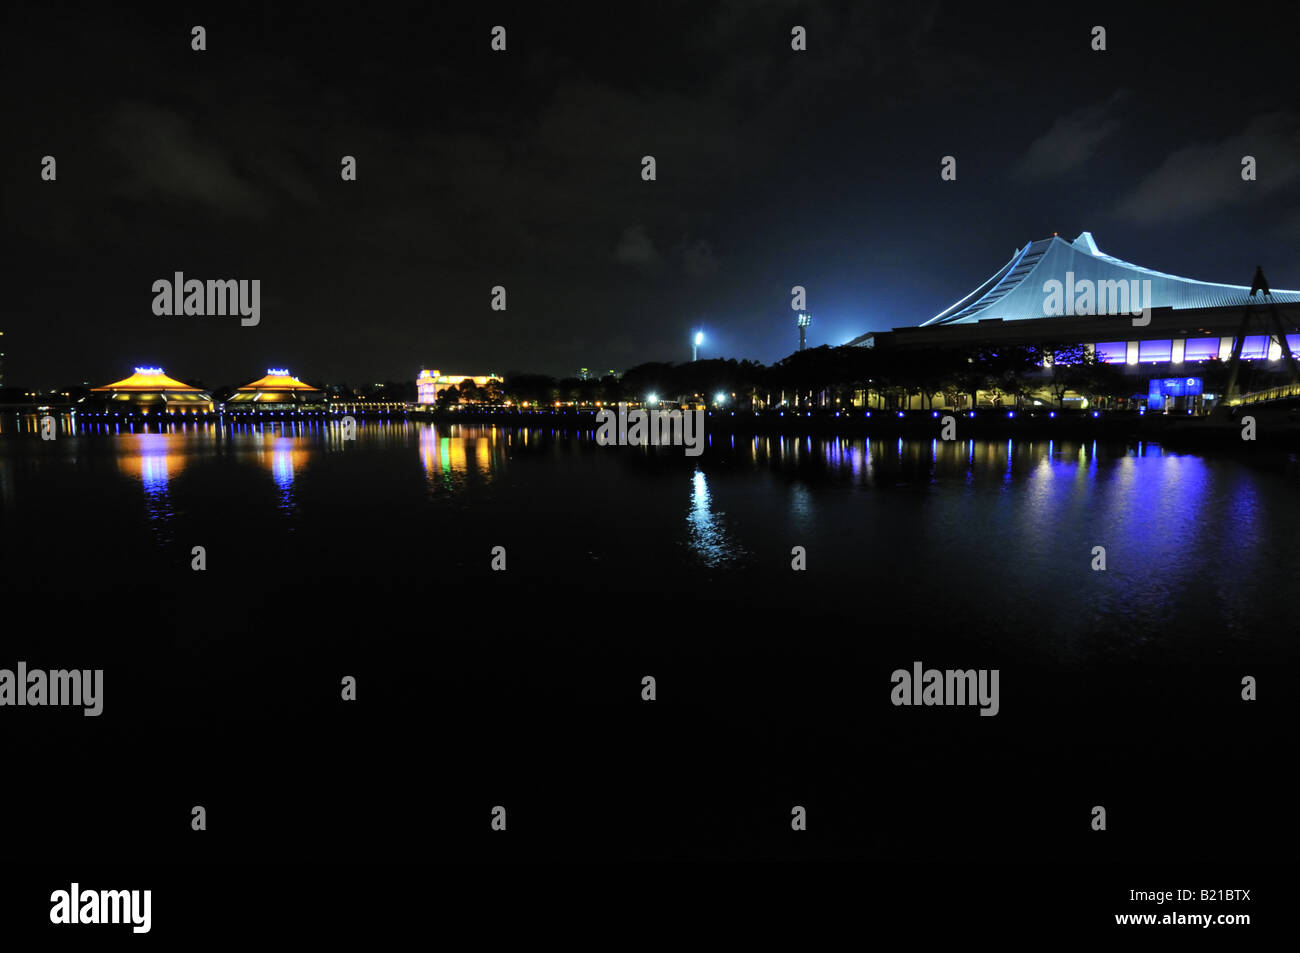 Singapore Indoor Stadium and Kallang river at night - Stock Image